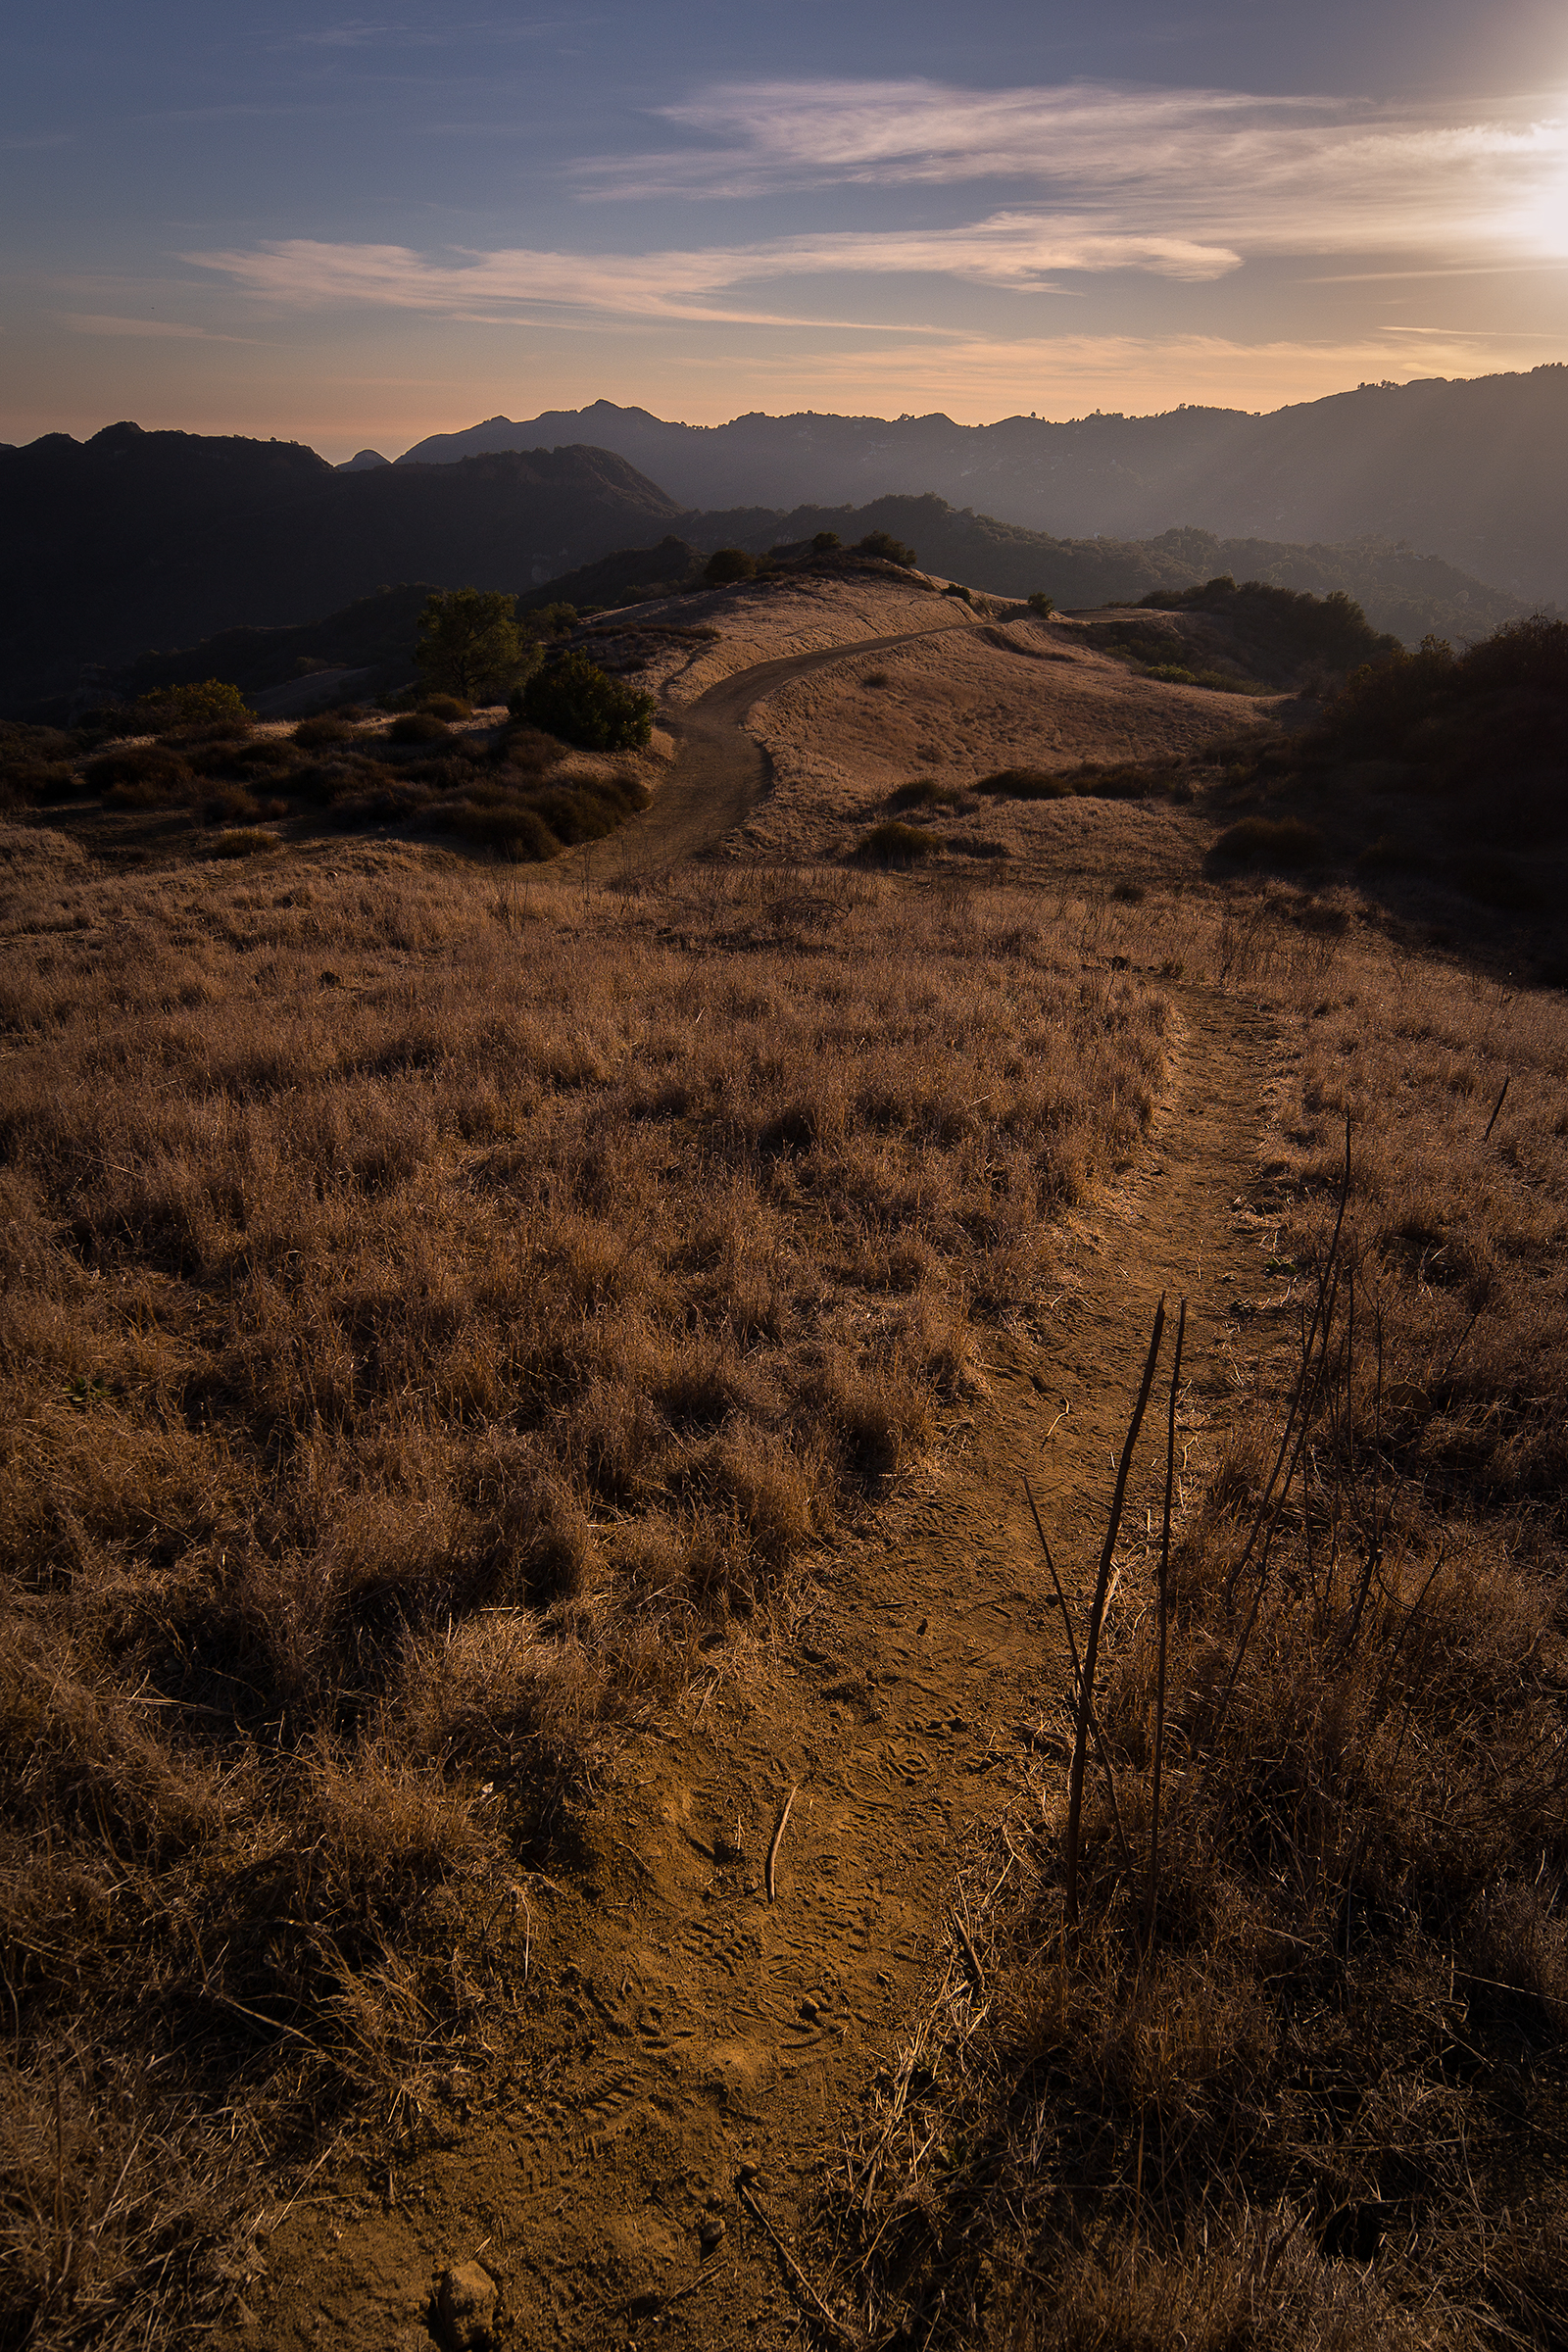 Wasim Muklashy Photography. Topanga Canyon, California. Santa Monica Mountains.